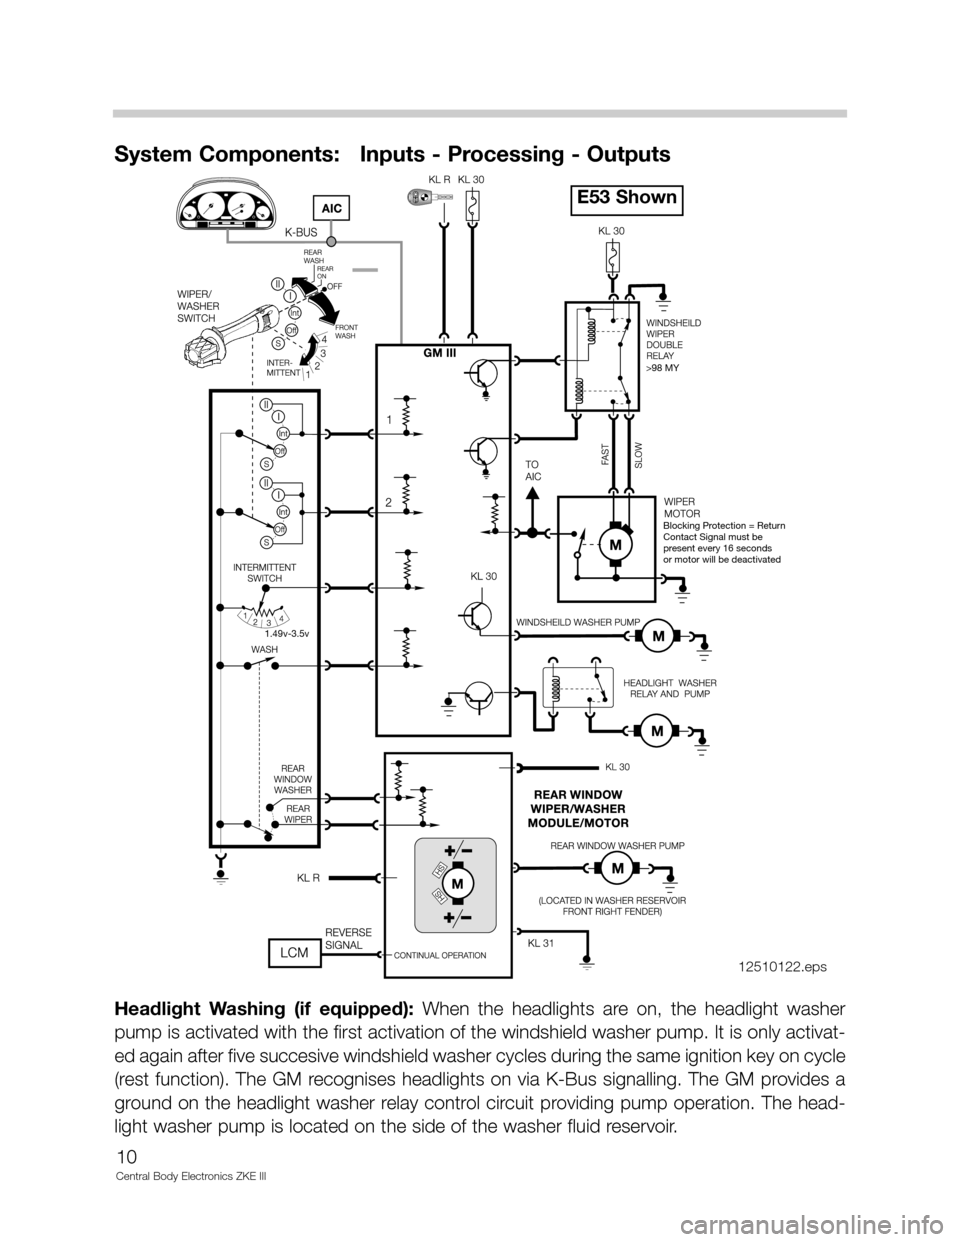 hight resolution of 2003 bmw x5 engine diagram wiring diagrams favorites03 bmw x5 engine diagram wiring diagram completed 03